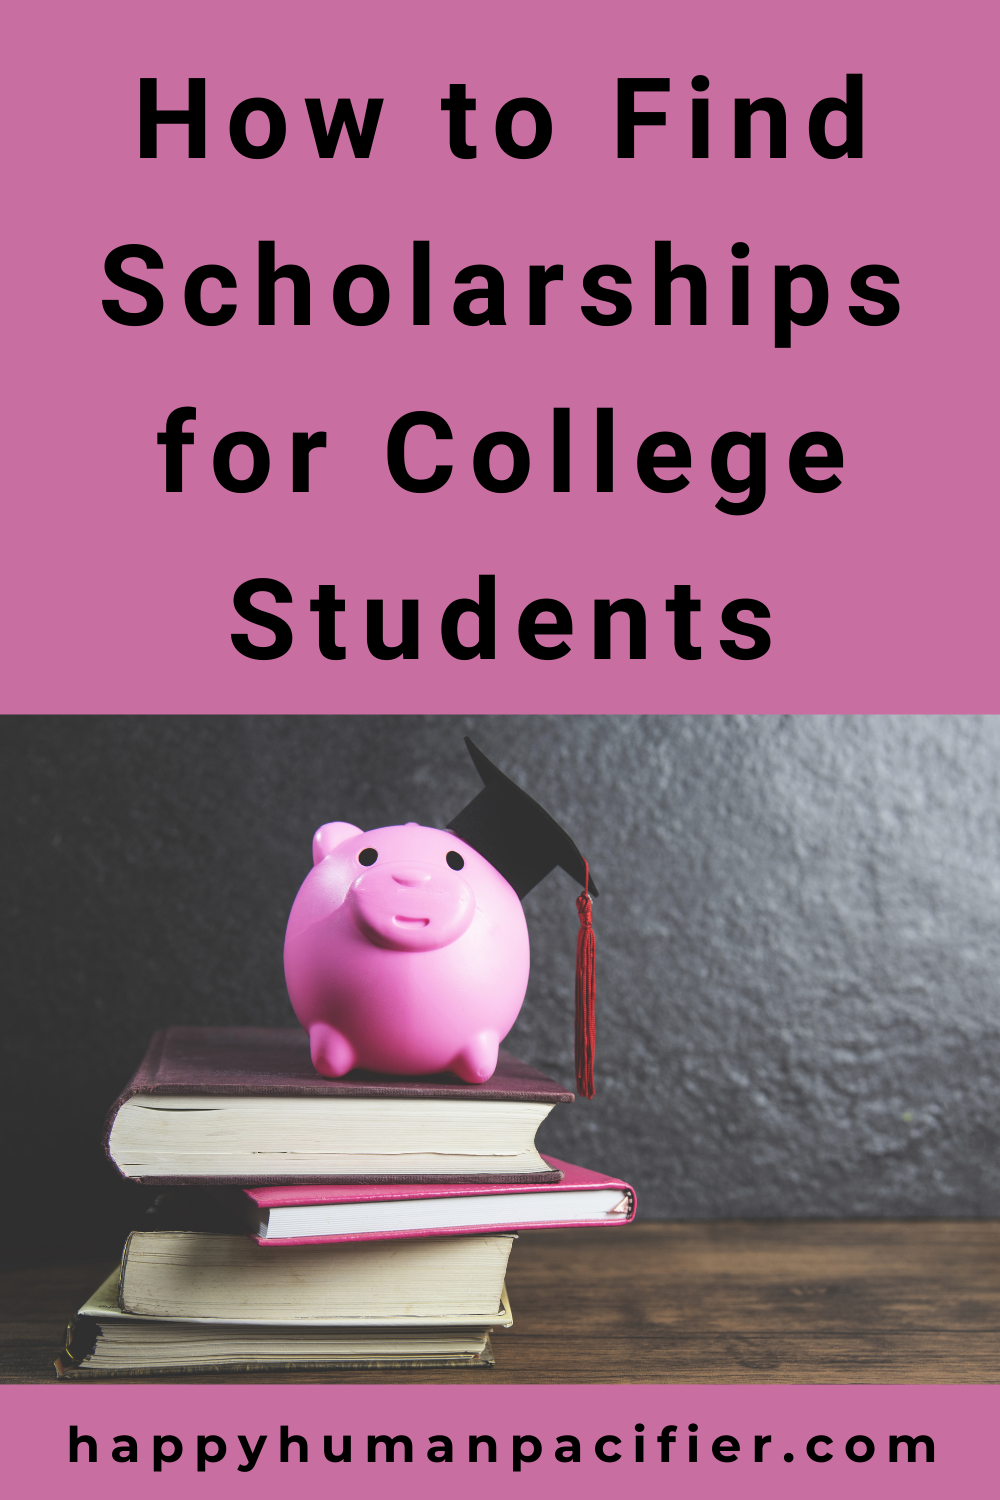 Get all your scholarship questions answered. Discover where and how to find scholarships for college students as well as when and how to apply for scholarships.